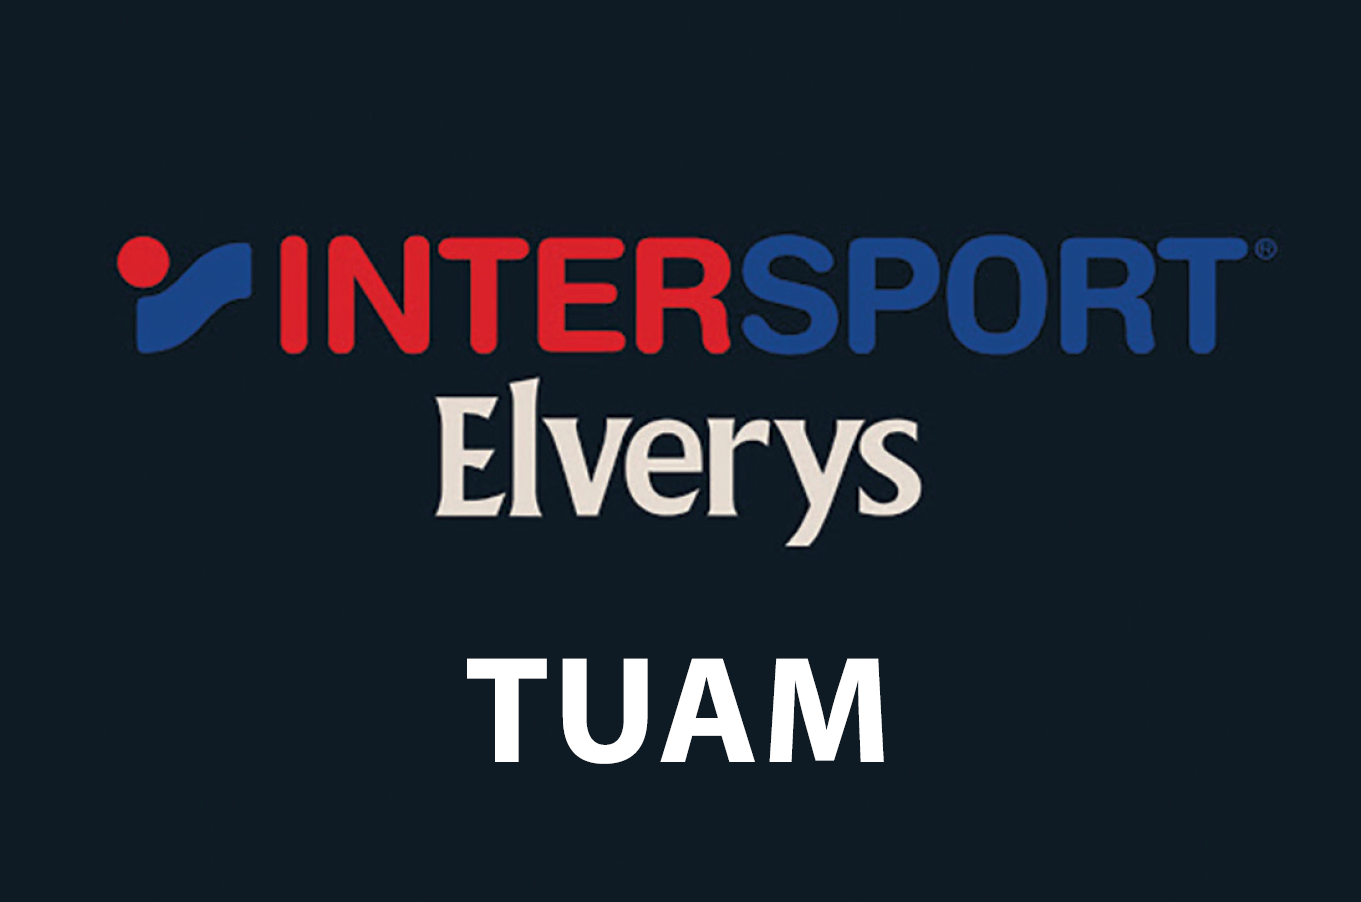 Elverys Intersport Tuam only